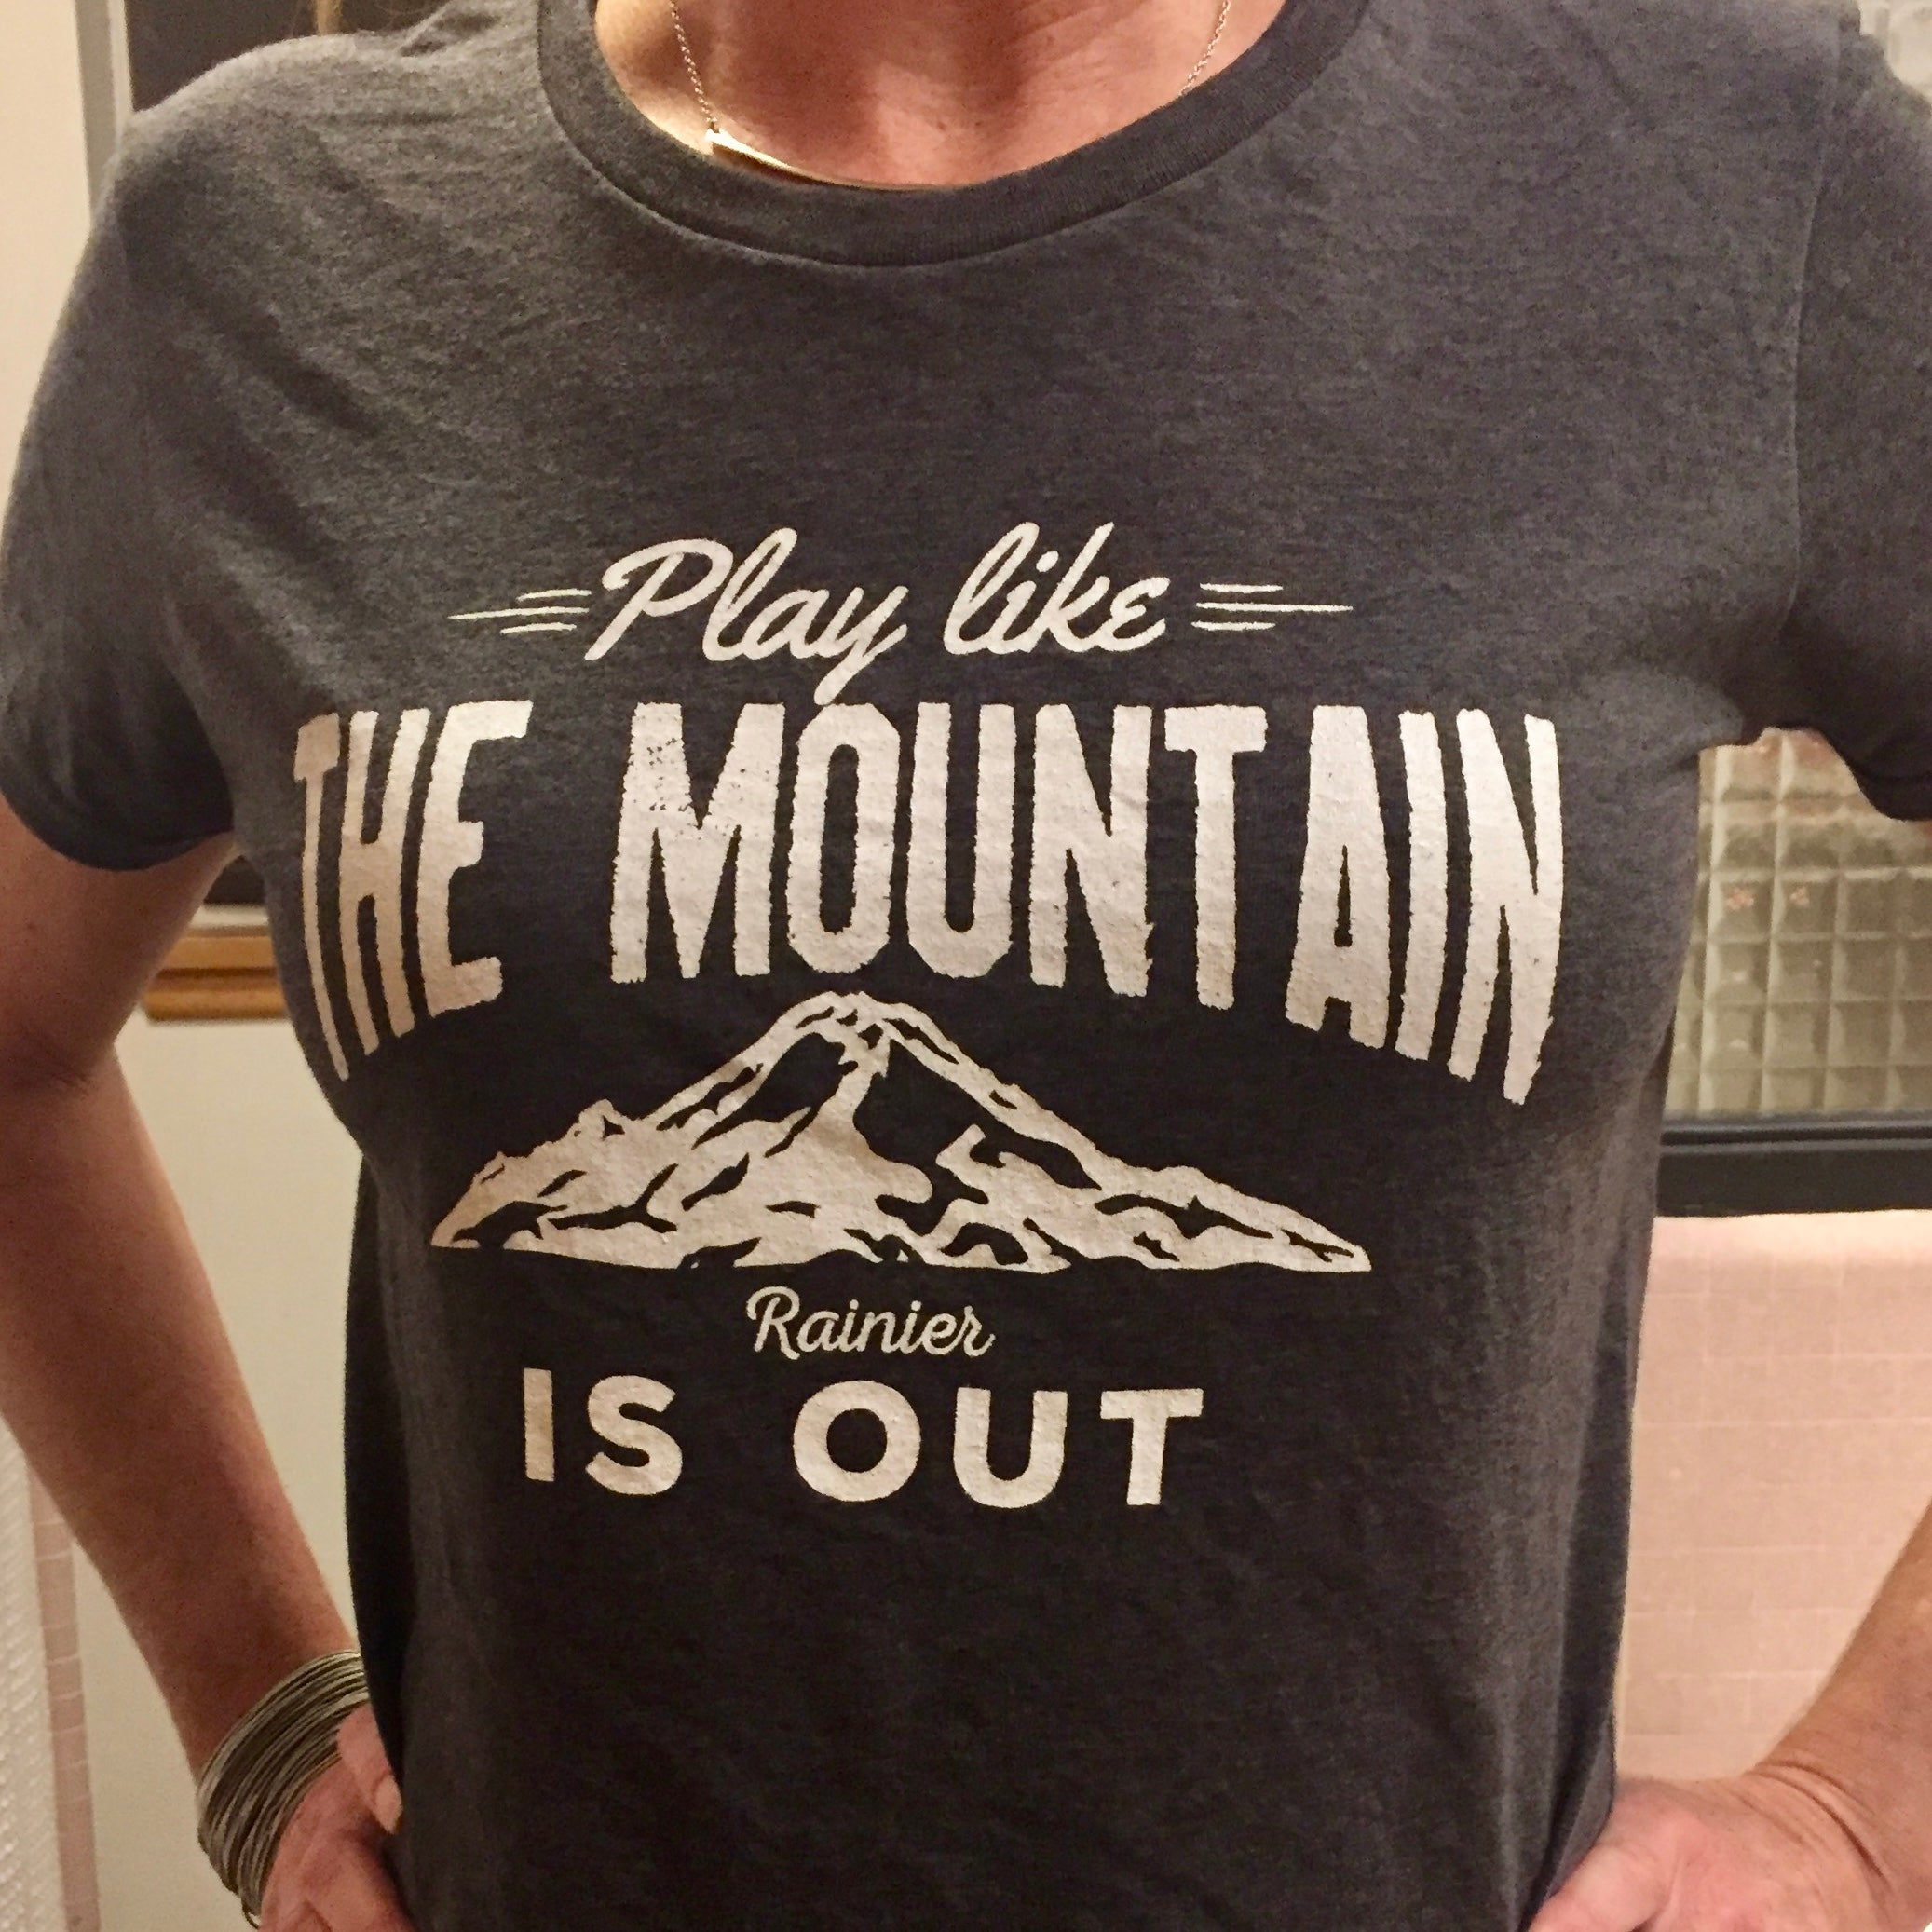 Play like the mountain is out.